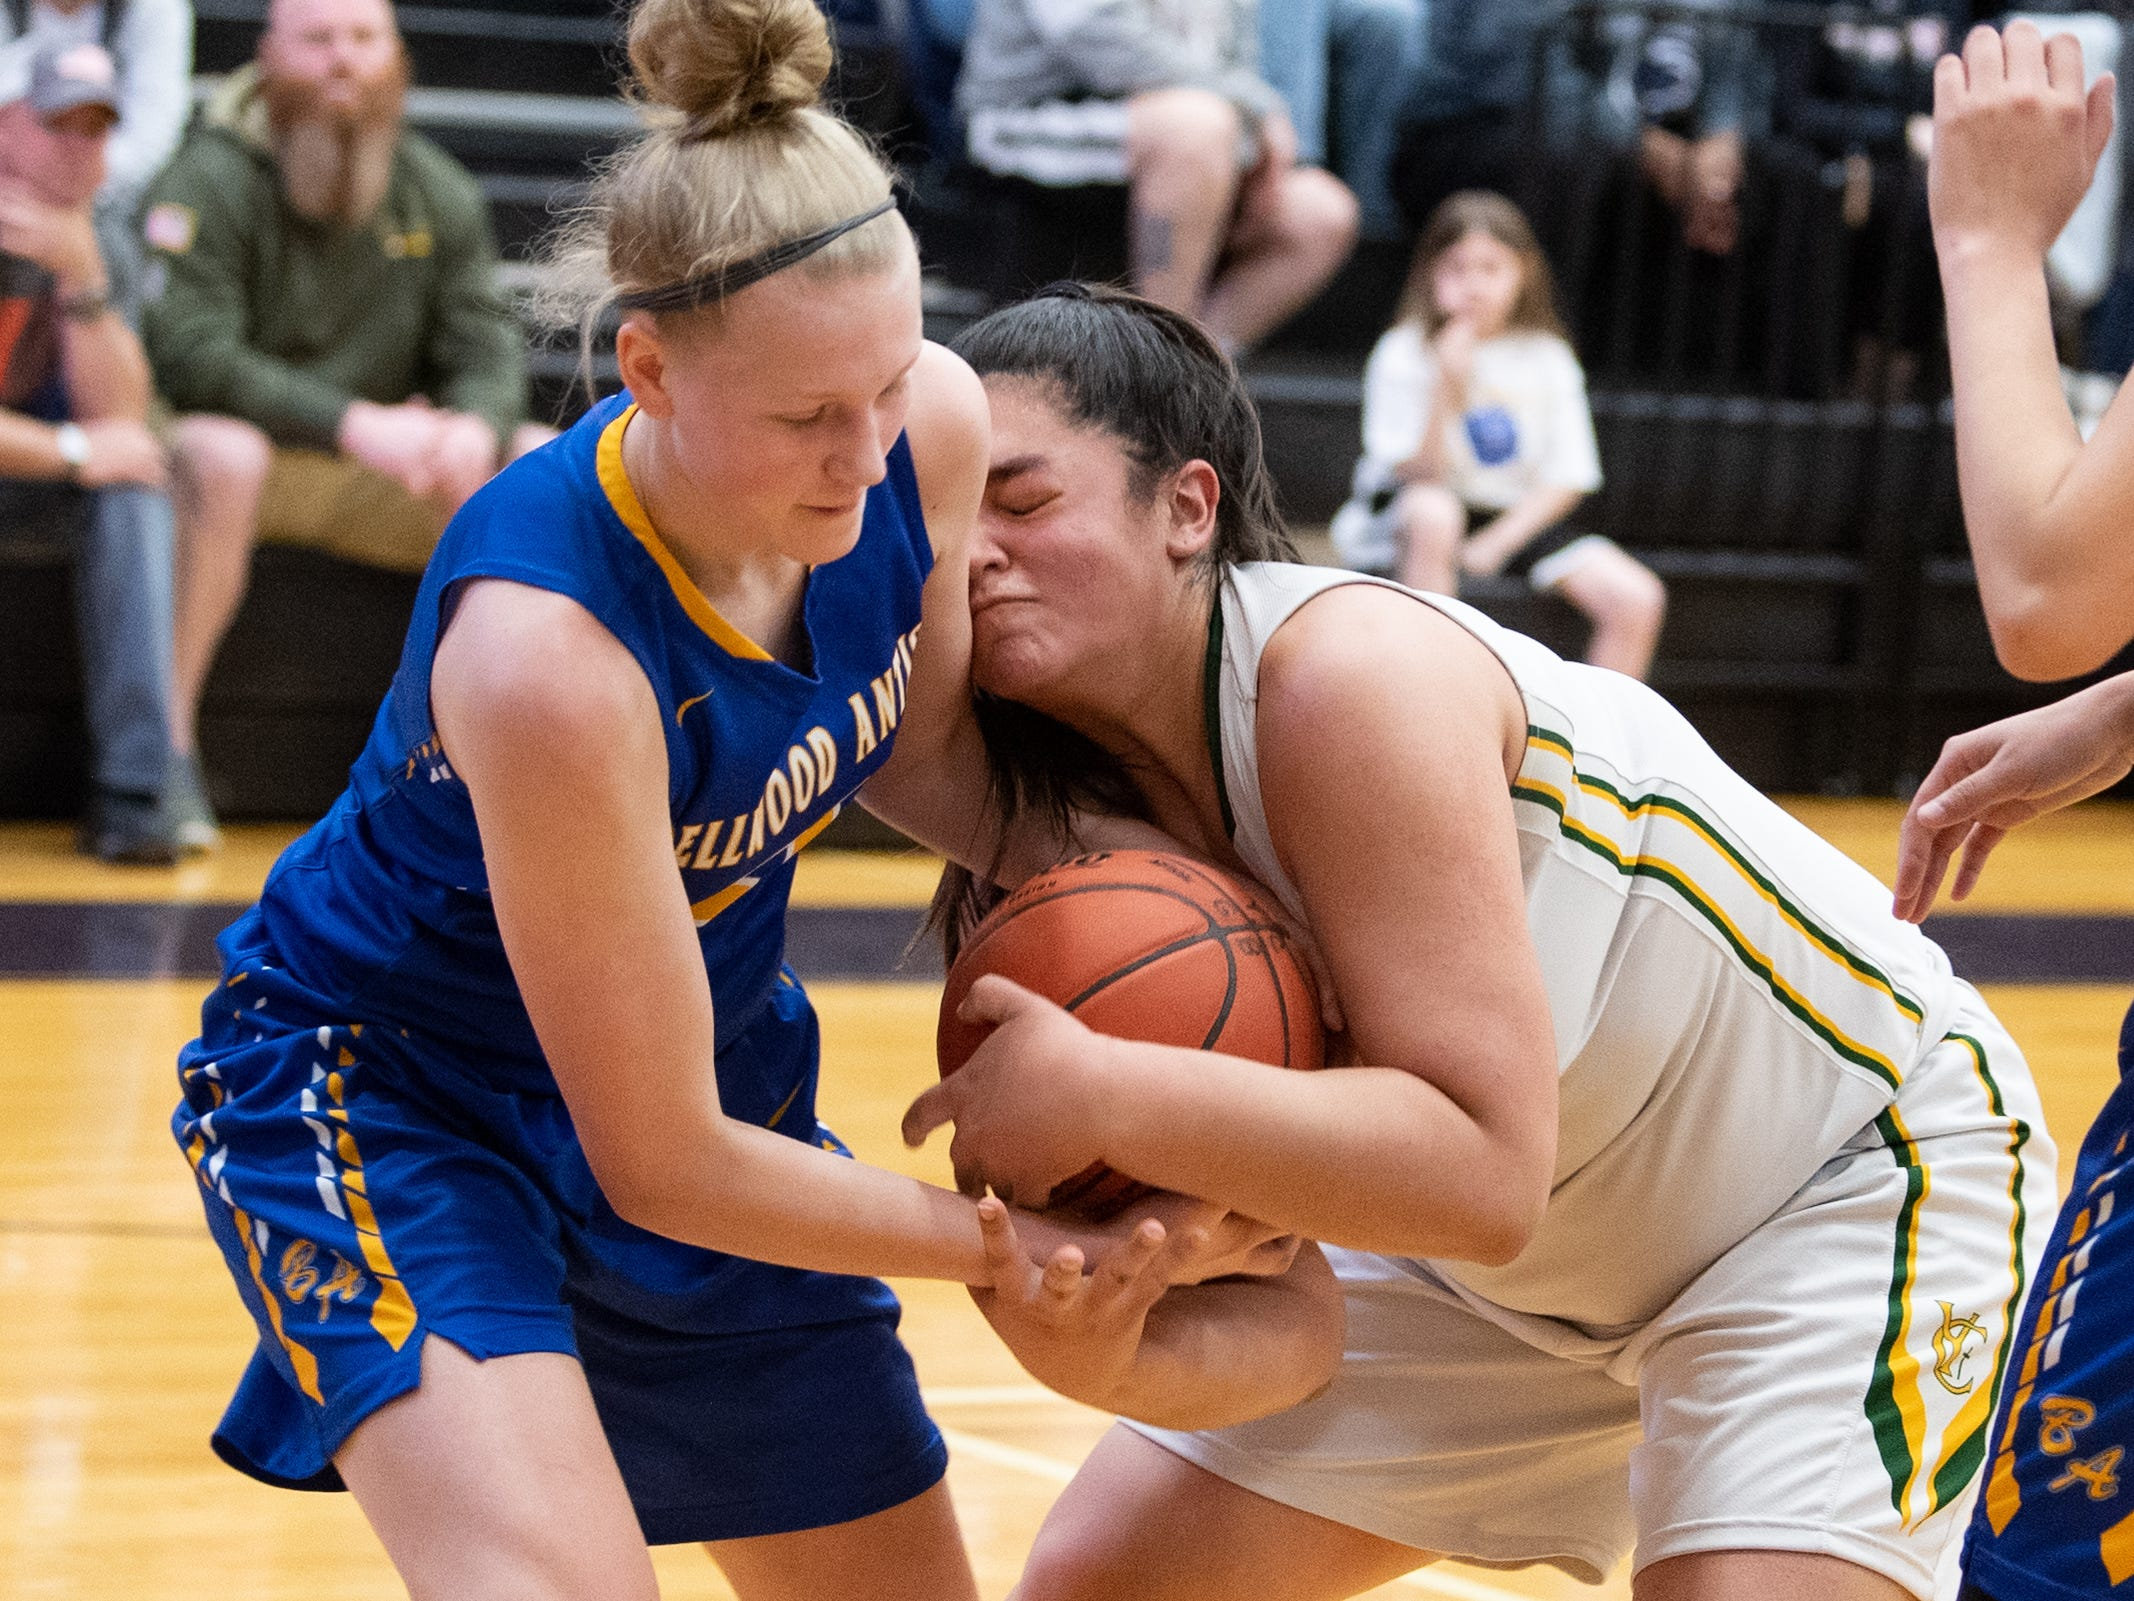 Alli Campbell (21) of Bellwood-Antis and Gabby Coley (11) of York Catholic wrestle for the ball during the PIAA girls' basketball game between York Catholic and Bellwood-Antis, March 15, 2019 at Mifflin County High School. The Fighting Irish lost to the Lady Blue Devils 53 to 47.